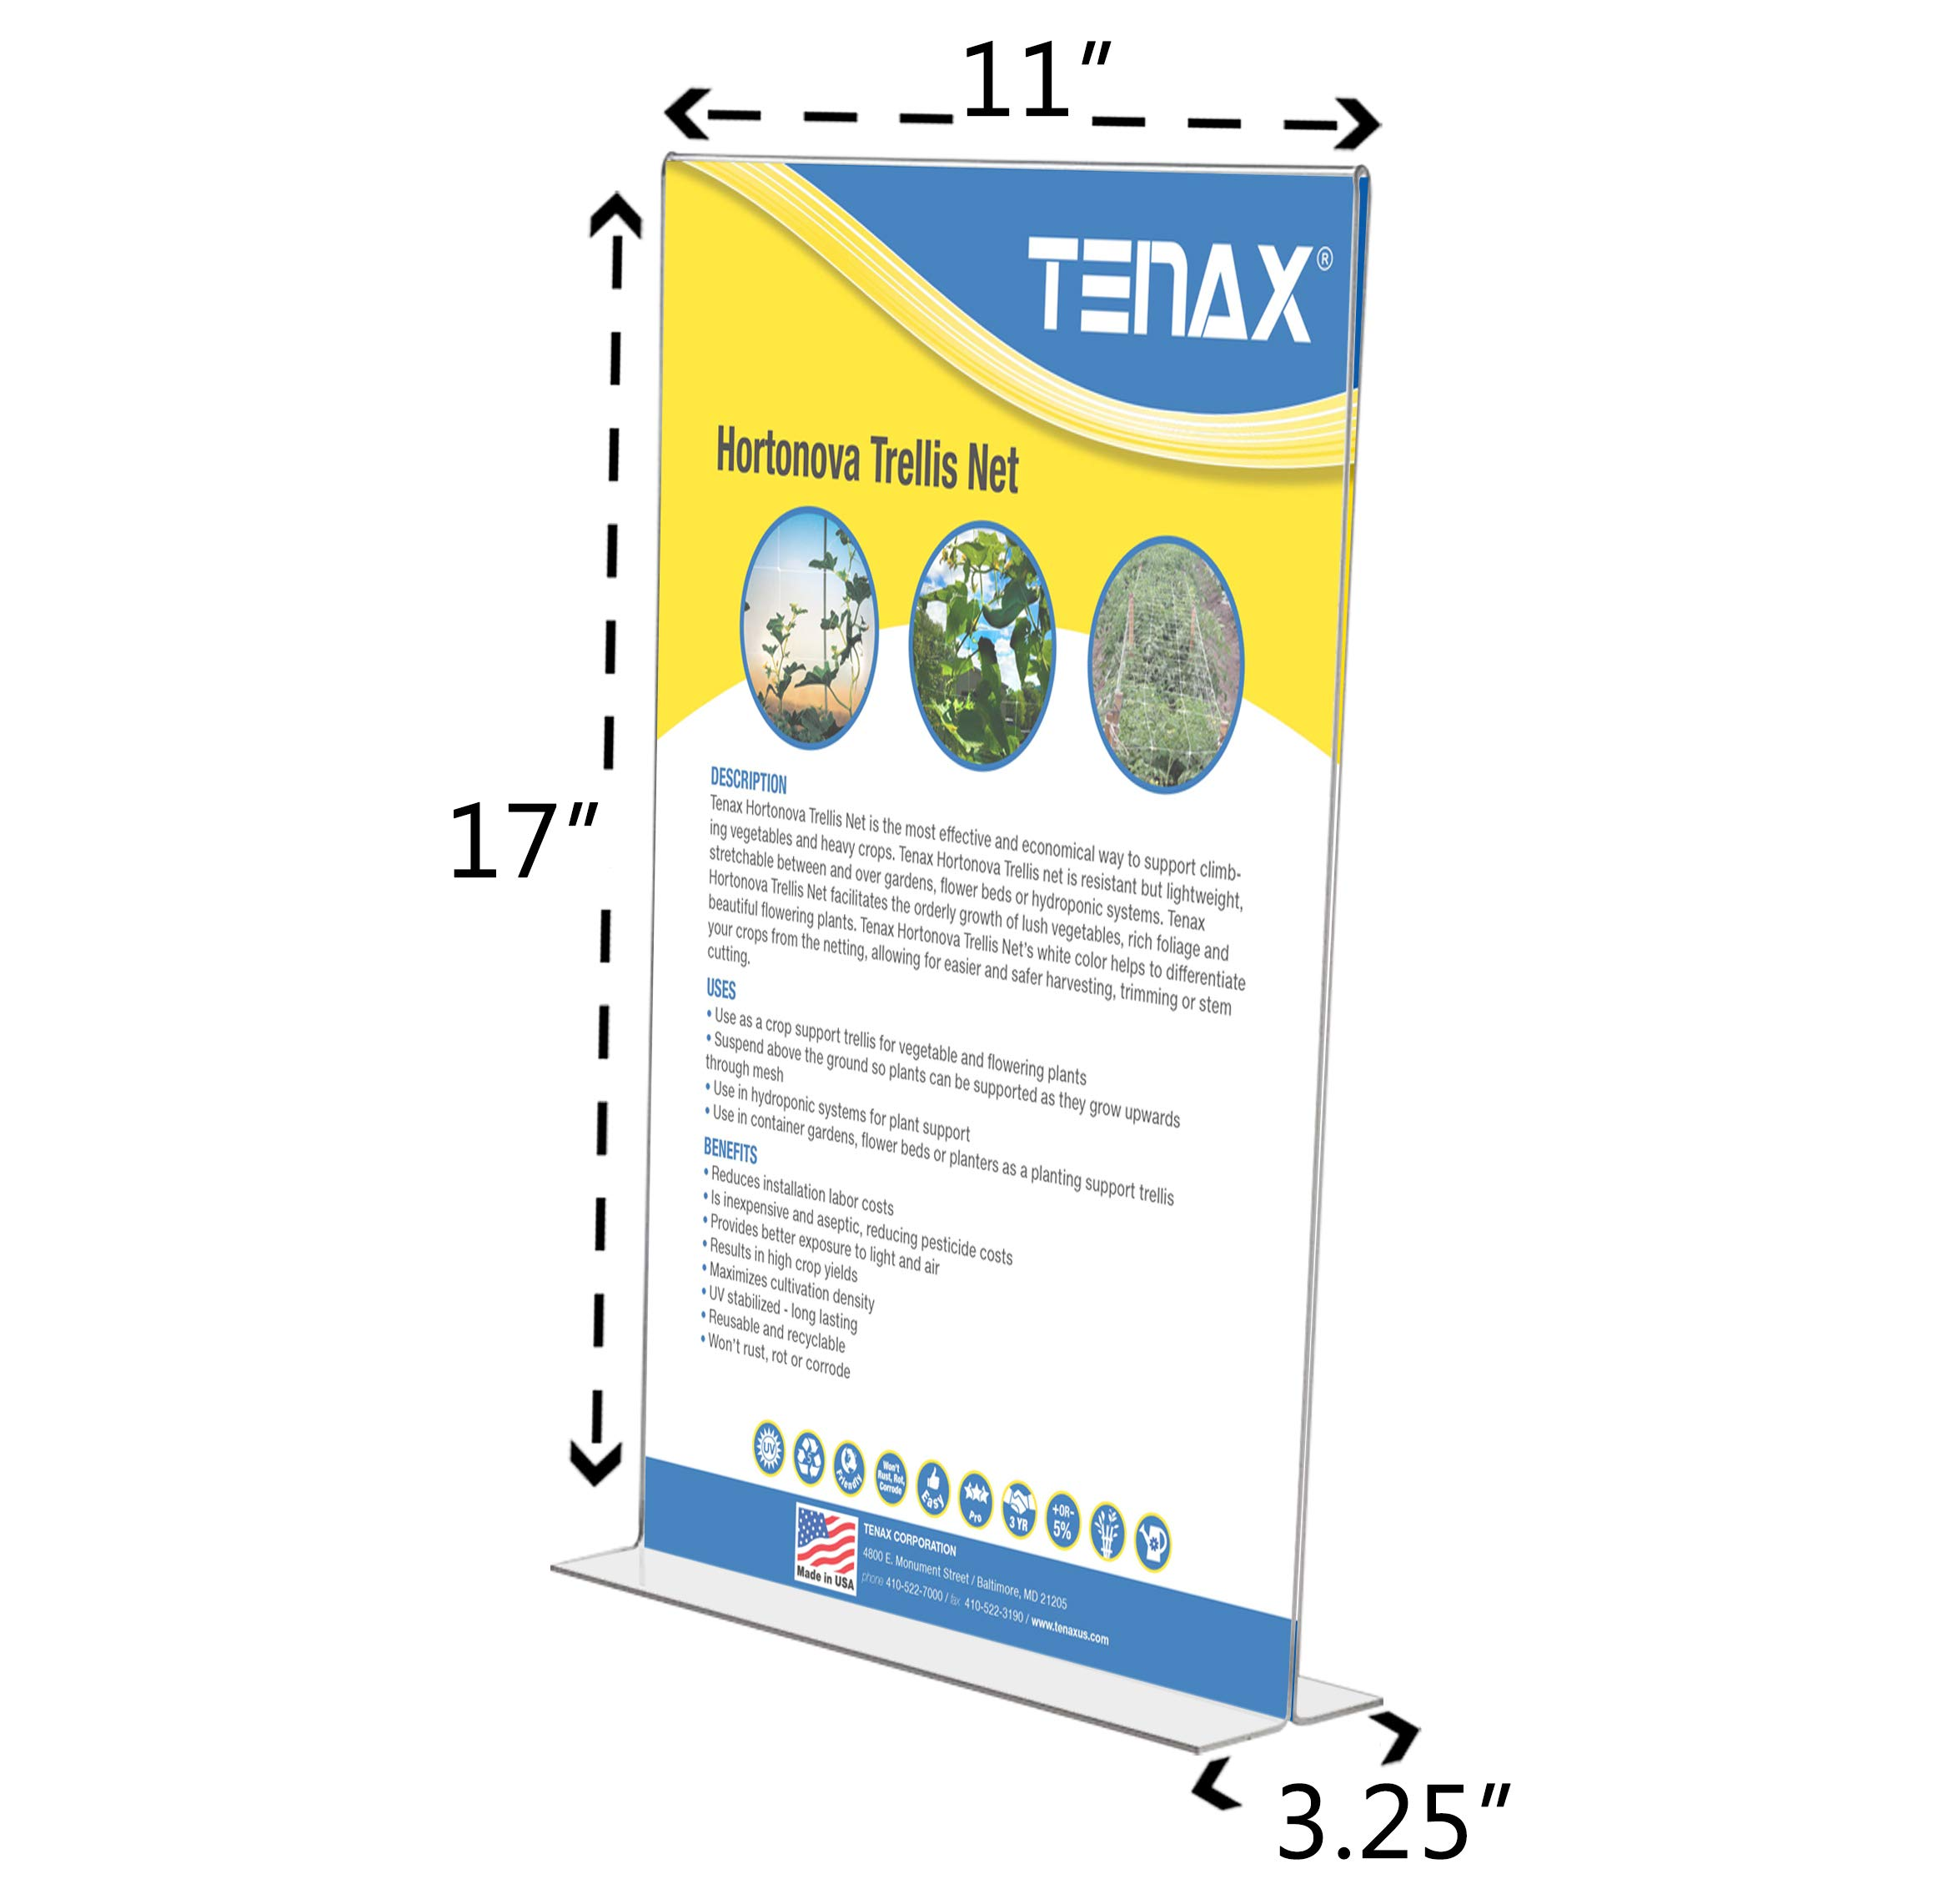 Marketing Holders Literature Flyer Poster Frame Letter Notice Menu Pricing Deli Table Tent Countertop Expo Event Sign Holder Display Stand Double Sided Bottom Loading 11''w x 17''h Pack of 4 by Marketing Holders (Image #3)